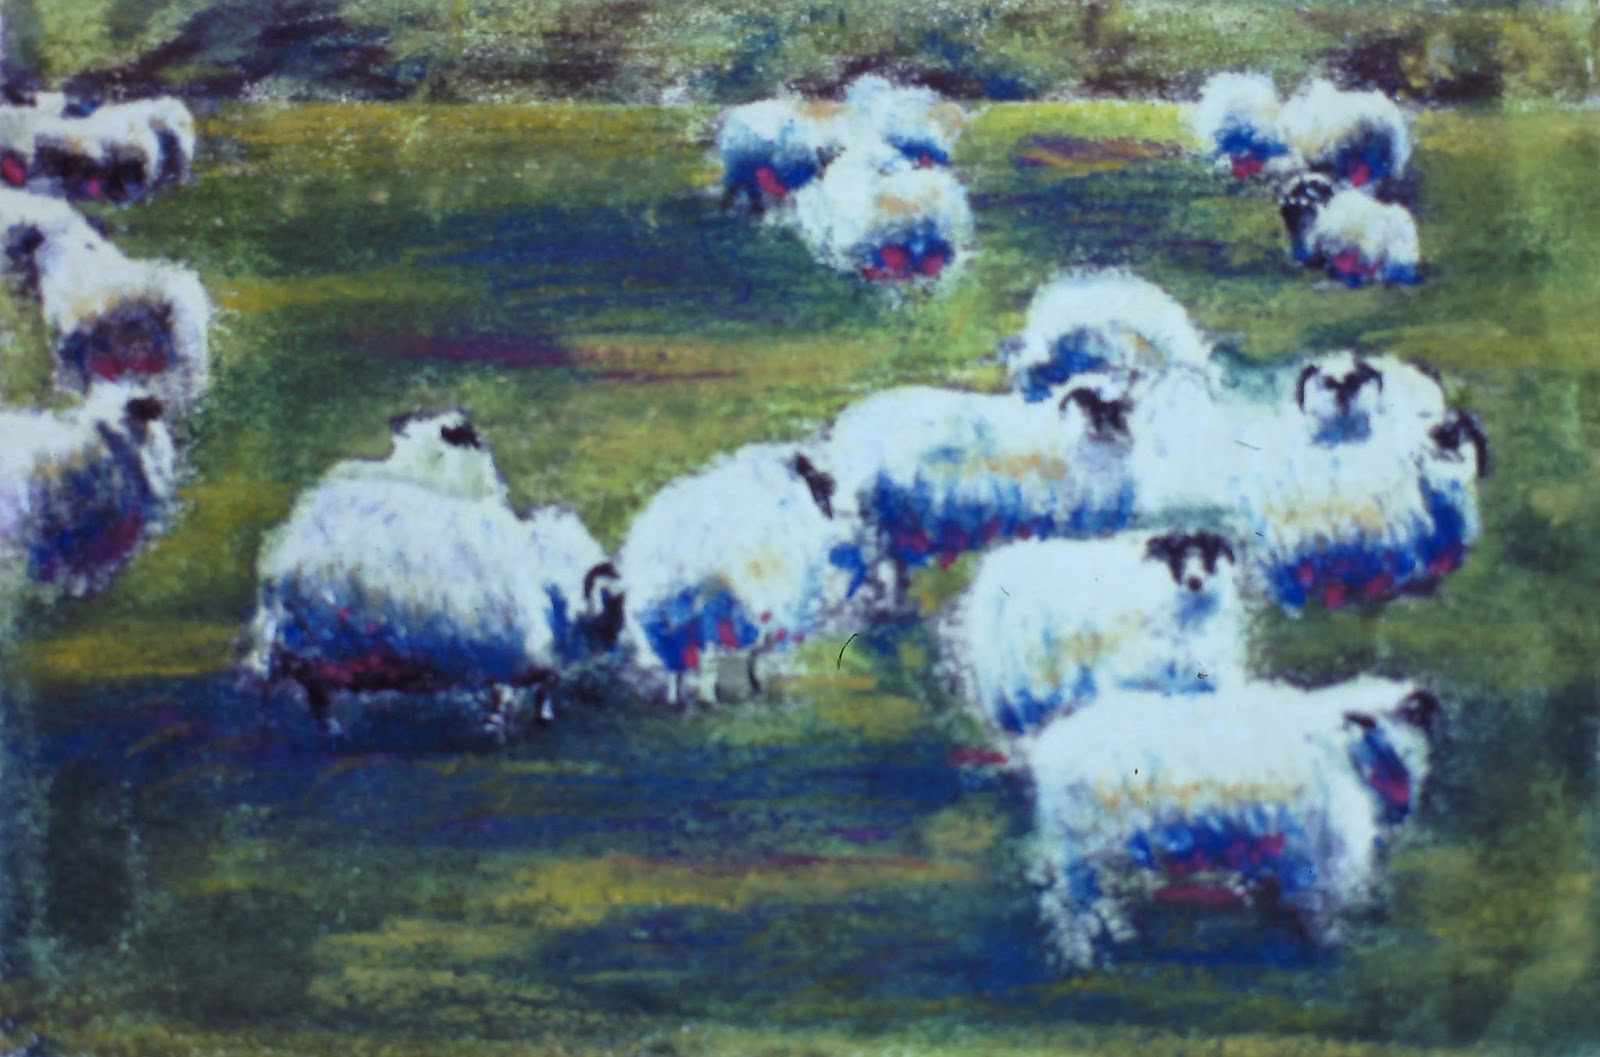 Sheep in a field near Fettercairn, Angus, Scotland  - by F. Lennox Campello 26 x 40 inches, Pastel on paper, c. 1989